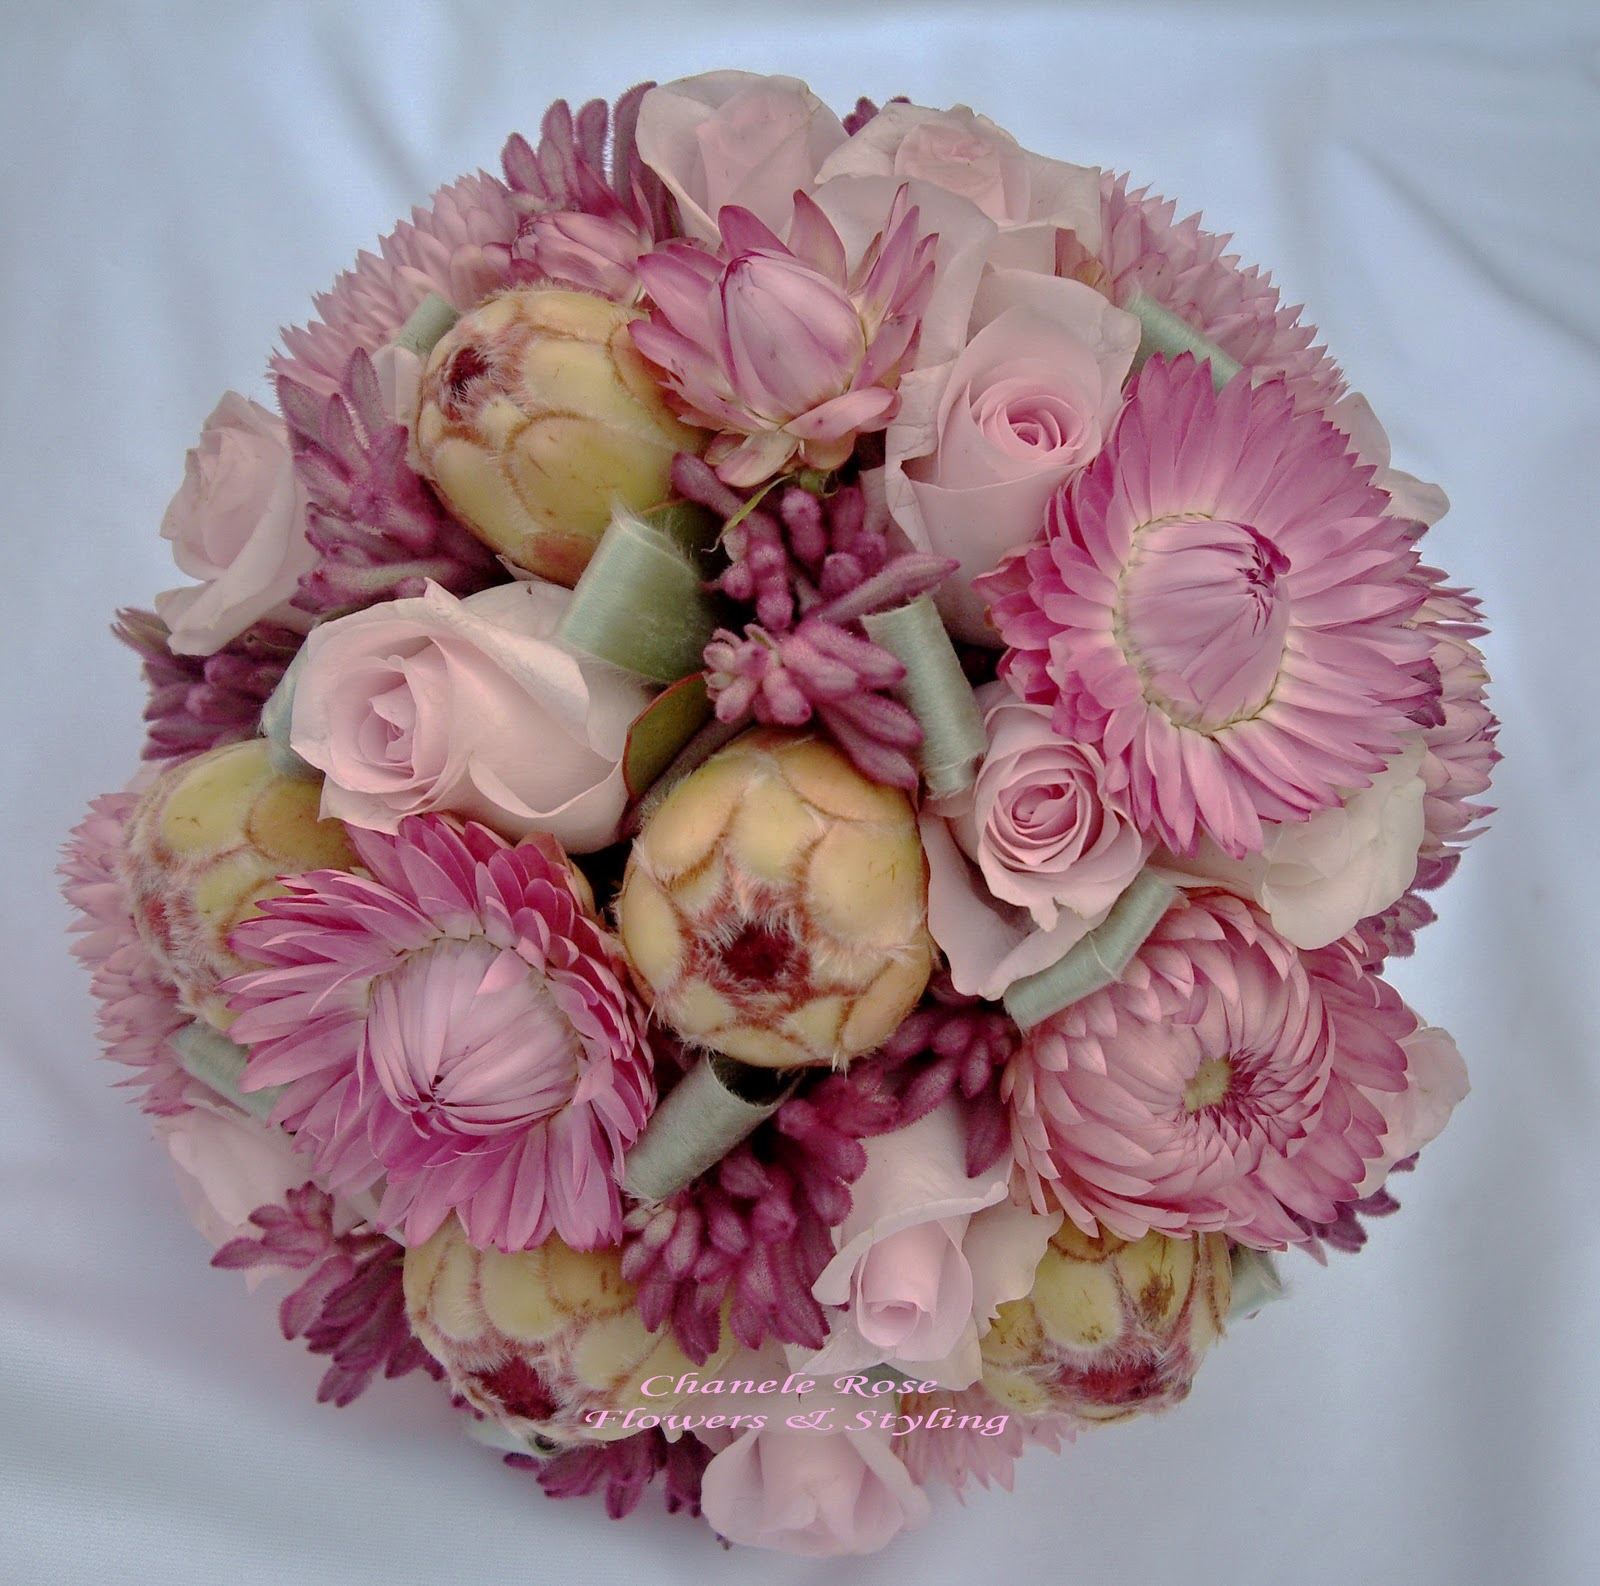 Pastel wedding bouquet by chanele rose flowers - Chanele Rose Flowers Blog Sydney Wedding Stylist